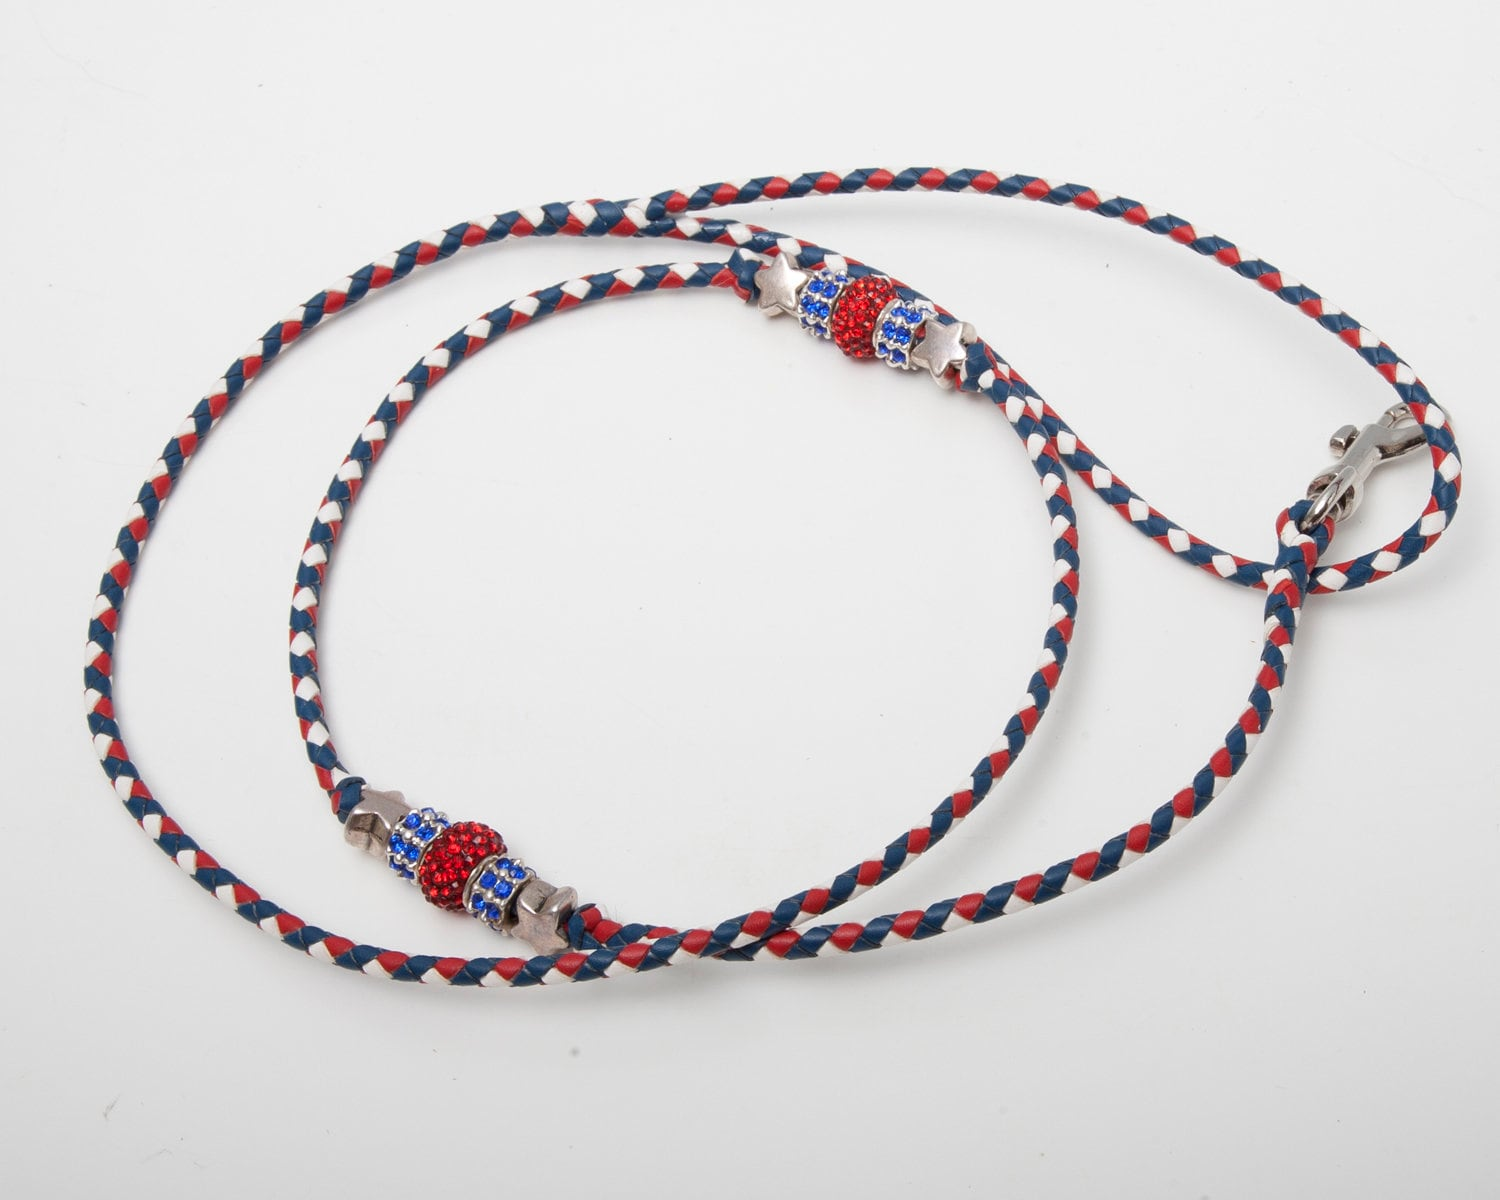 Kangaroo Leather Braided Dog Show Lead Of Royal Blue